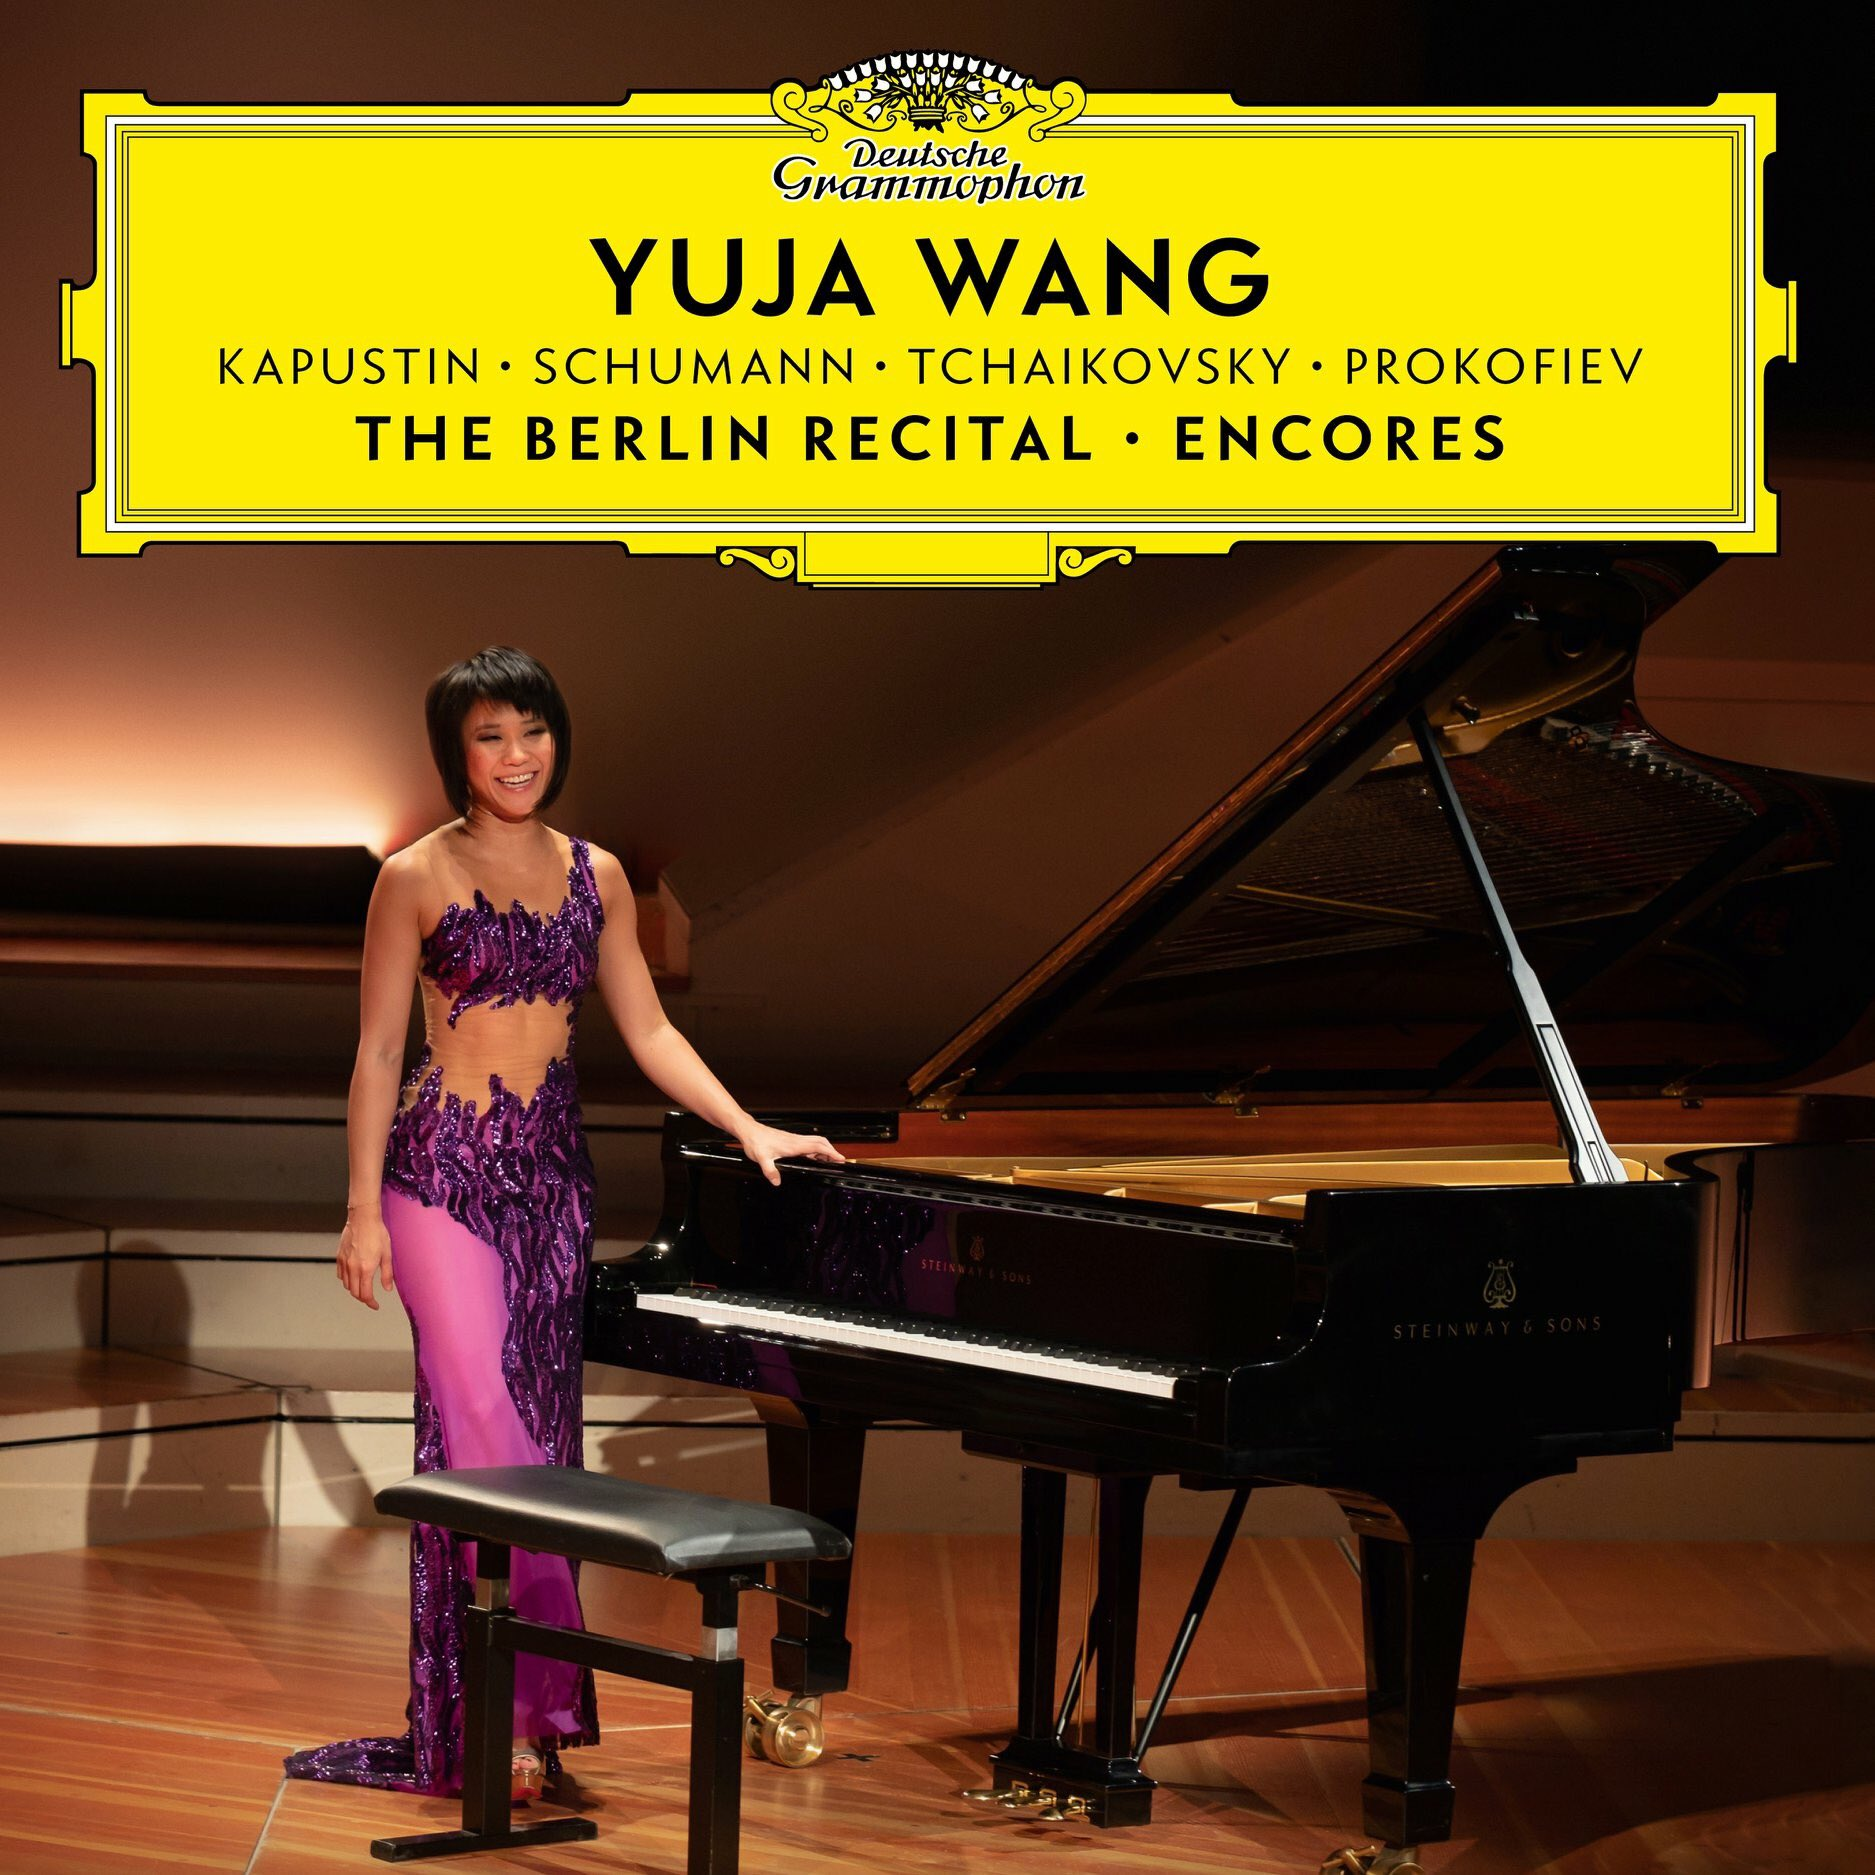 Reloaded twaddle – RT @RosemarieUmetsu: Congrats pianist Yuja Wang on her new recording wearing #at...